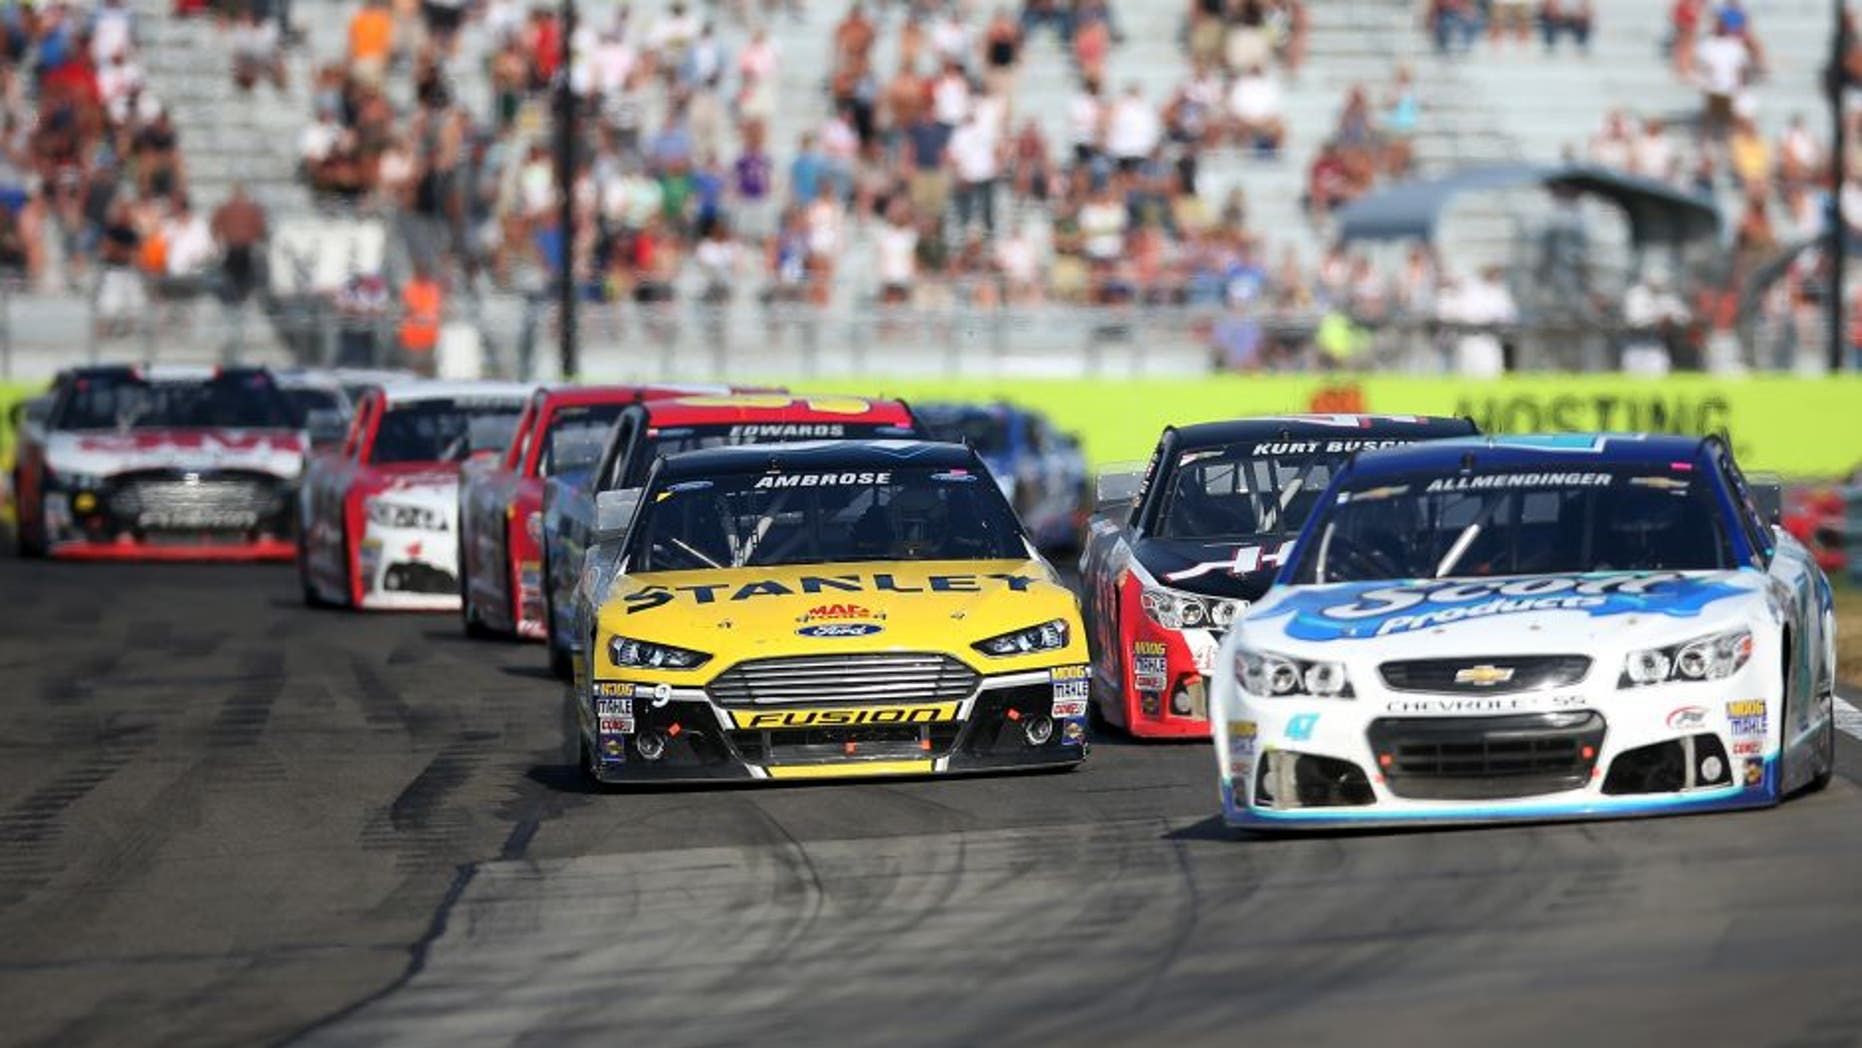 WATKINS GLEN, NY - AUGUST 10: AJ Allmendinger, driver of the #47 Scott Products Chevrolet, leads Marcos Ambrose, driver of the #9 Stanley Ford, and the field during the NASCAR Sprint Cup Series Cheez-It 355 at Watkins Glen International on August 10, 2014 in Watkins Glen, New York. (Photo by Chris Graythen/NASCAR via Getty Images)